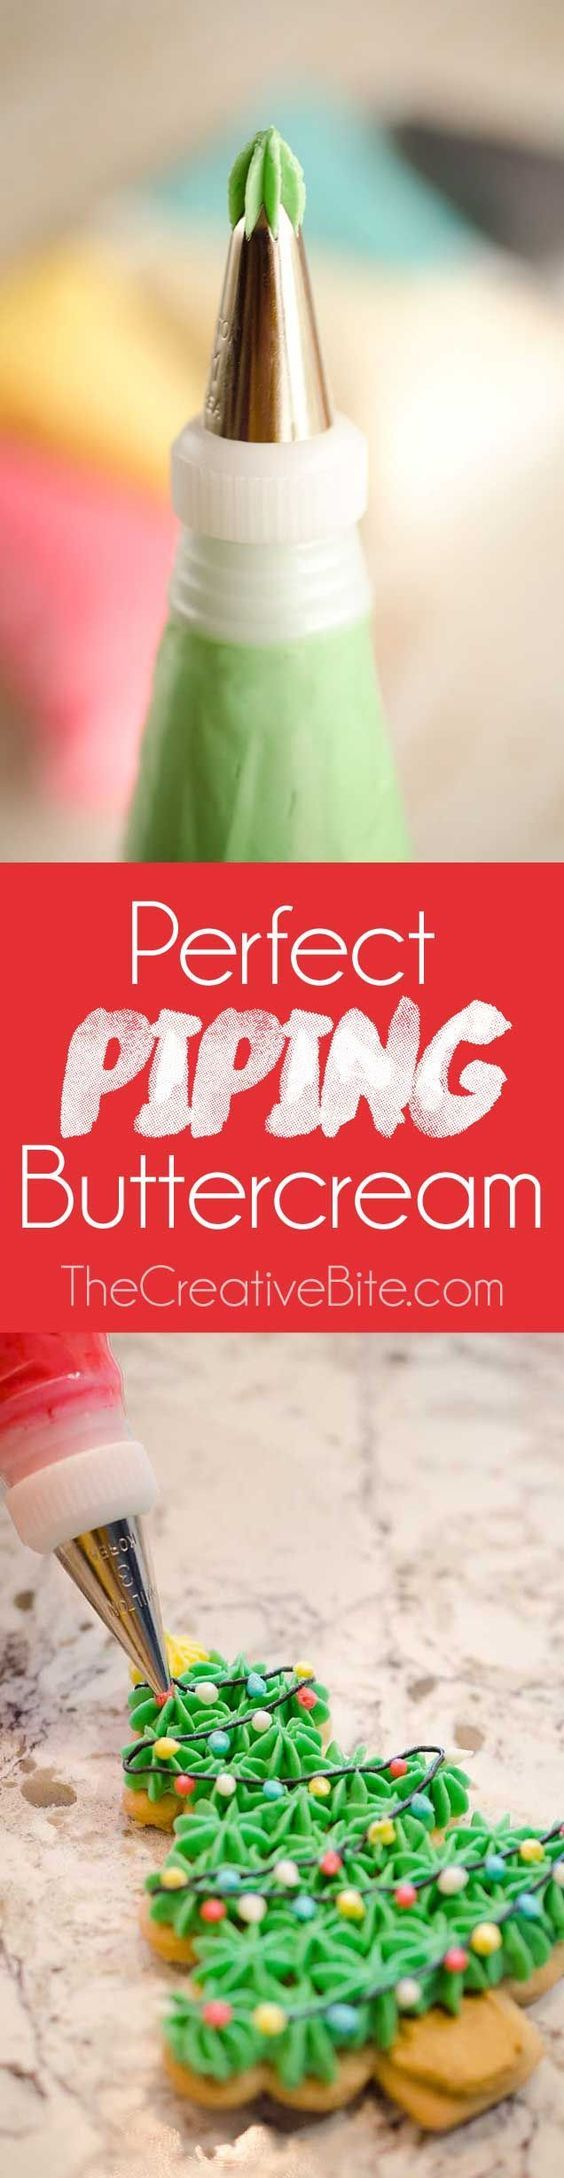 Perfect Piping Buttercream is the absolute best recipe for frosting cakes and cookies with a great consistency just right for piping your beautiful designs. This luscious buttercream frosting is light and airy with added flavor from vanilla and almond extract.Perfect Piping Buttercream is the absolute best recipe for frosting cakes and cookies with a great consistency just right for piping your beautiful designs. This luscious buttercream frosting is light and airy with added flavor from…